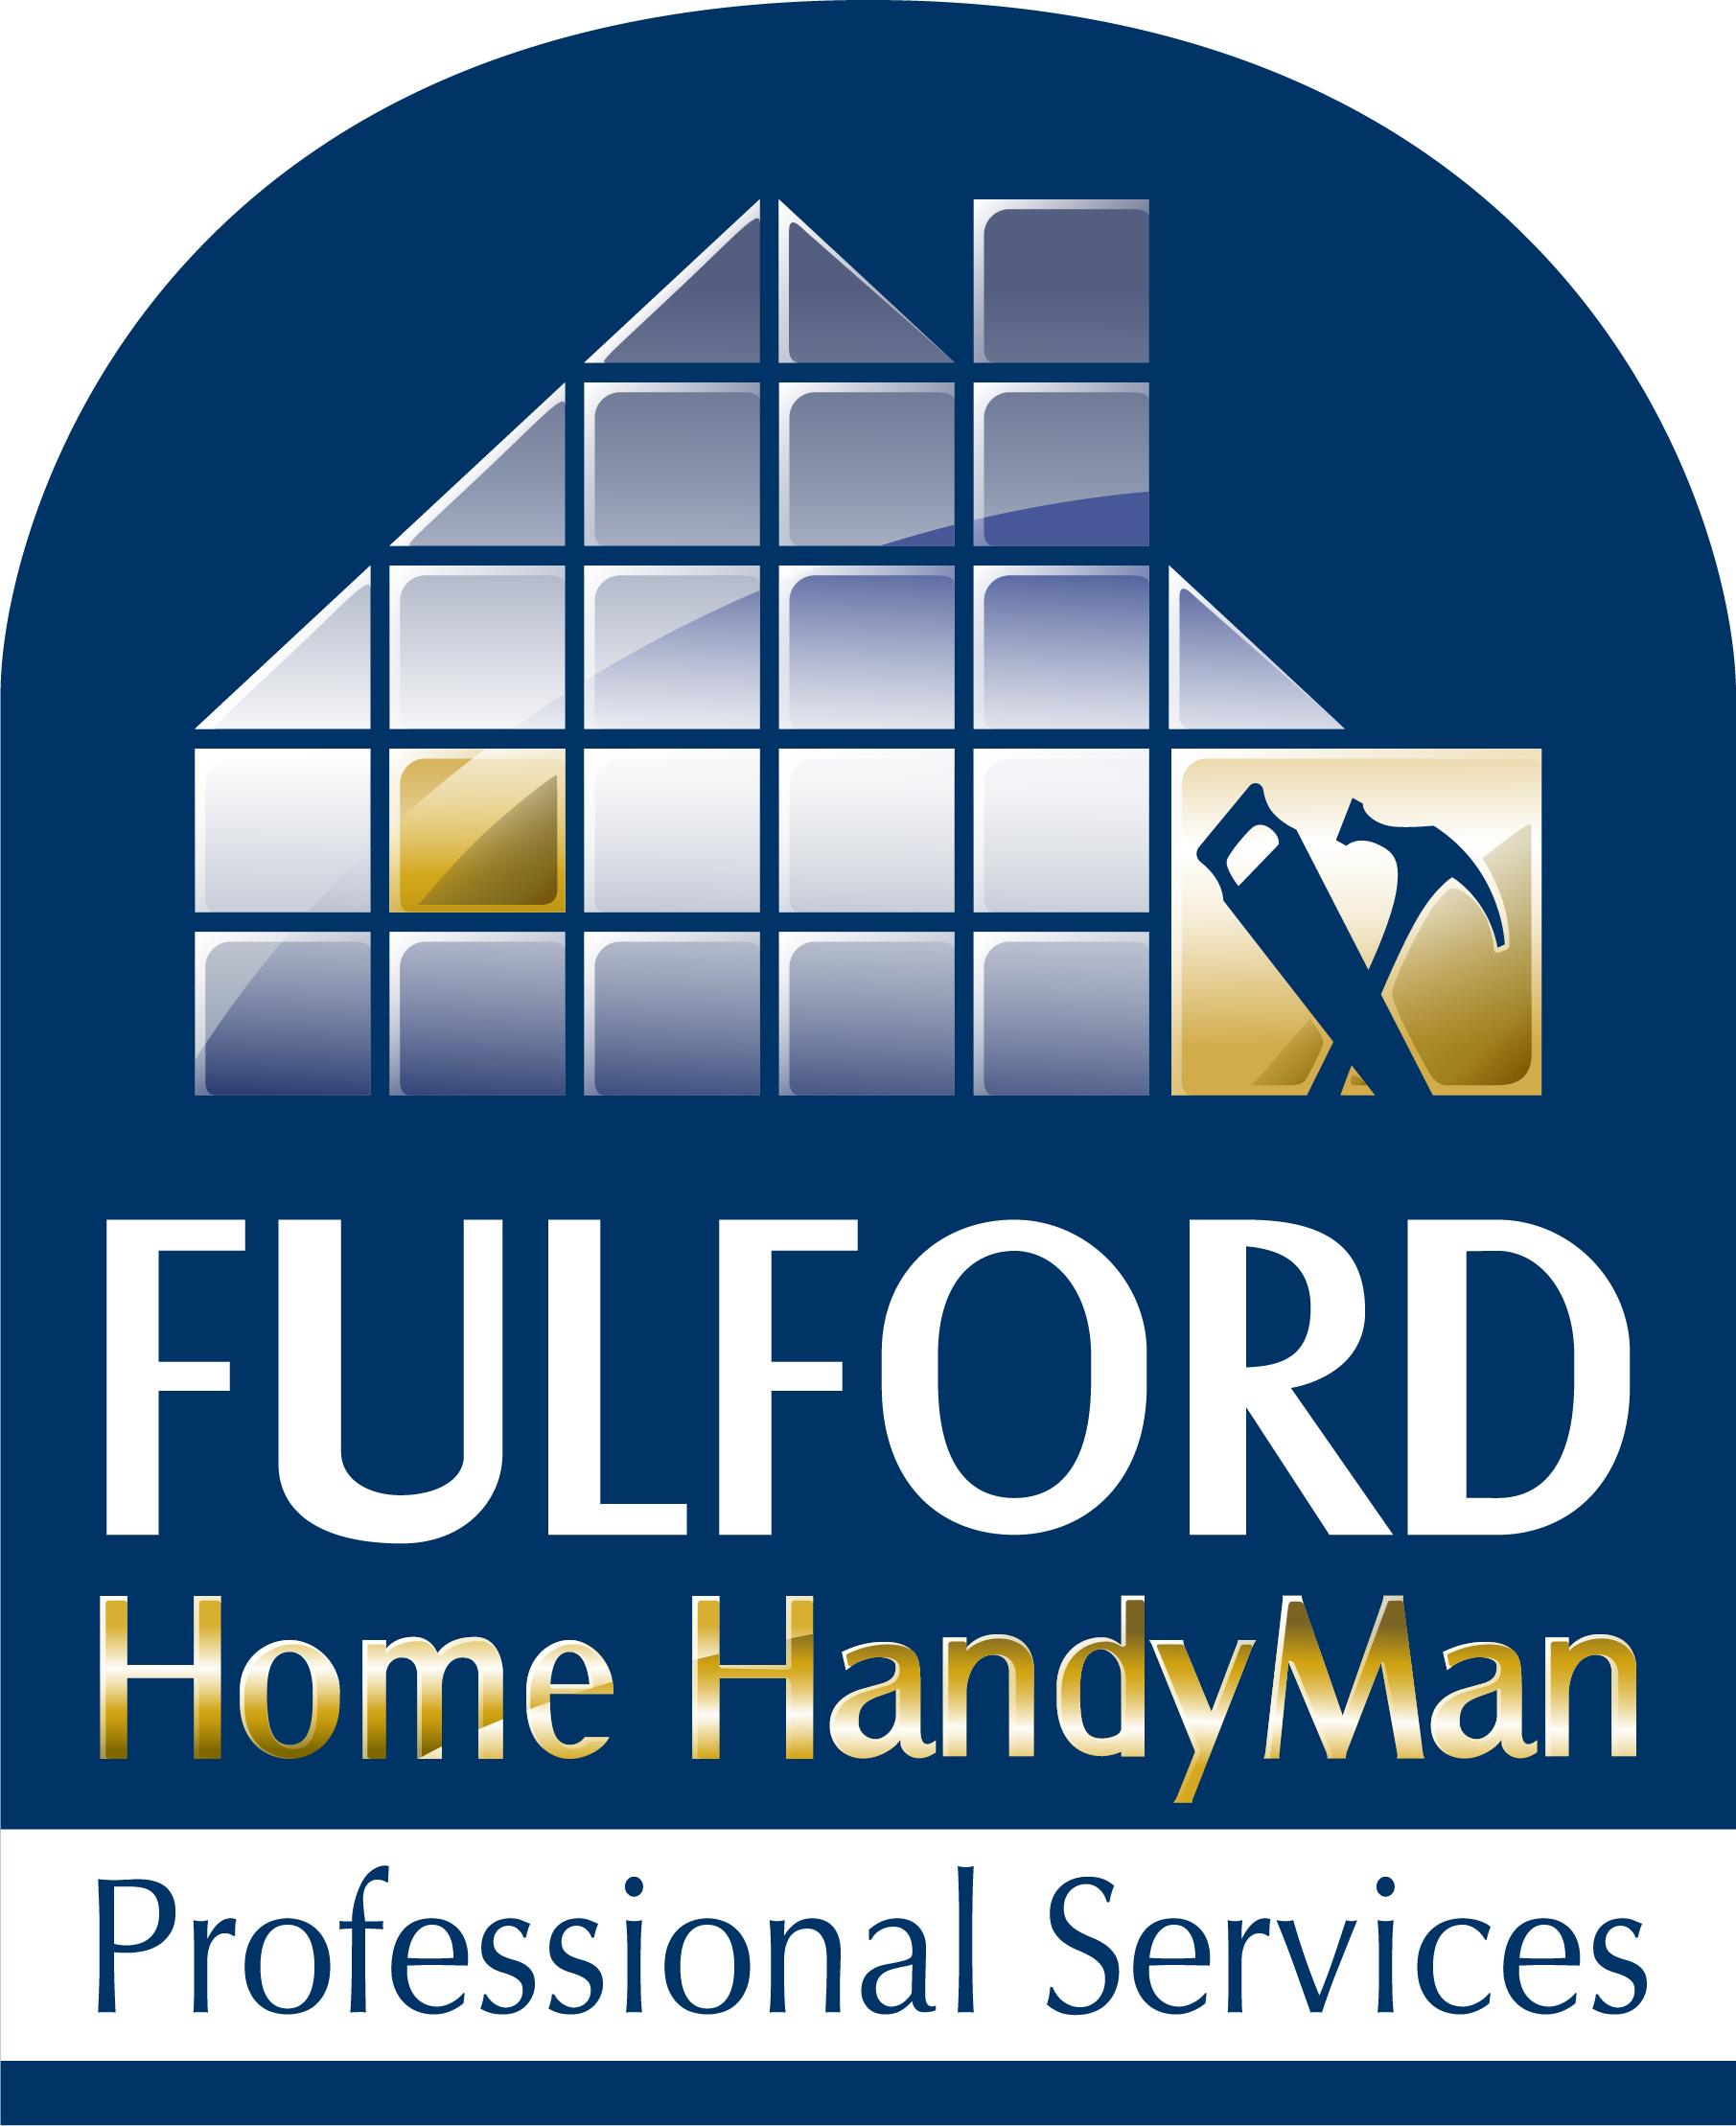 Fulford Handyman, A Division of Fulford Construction, Inc